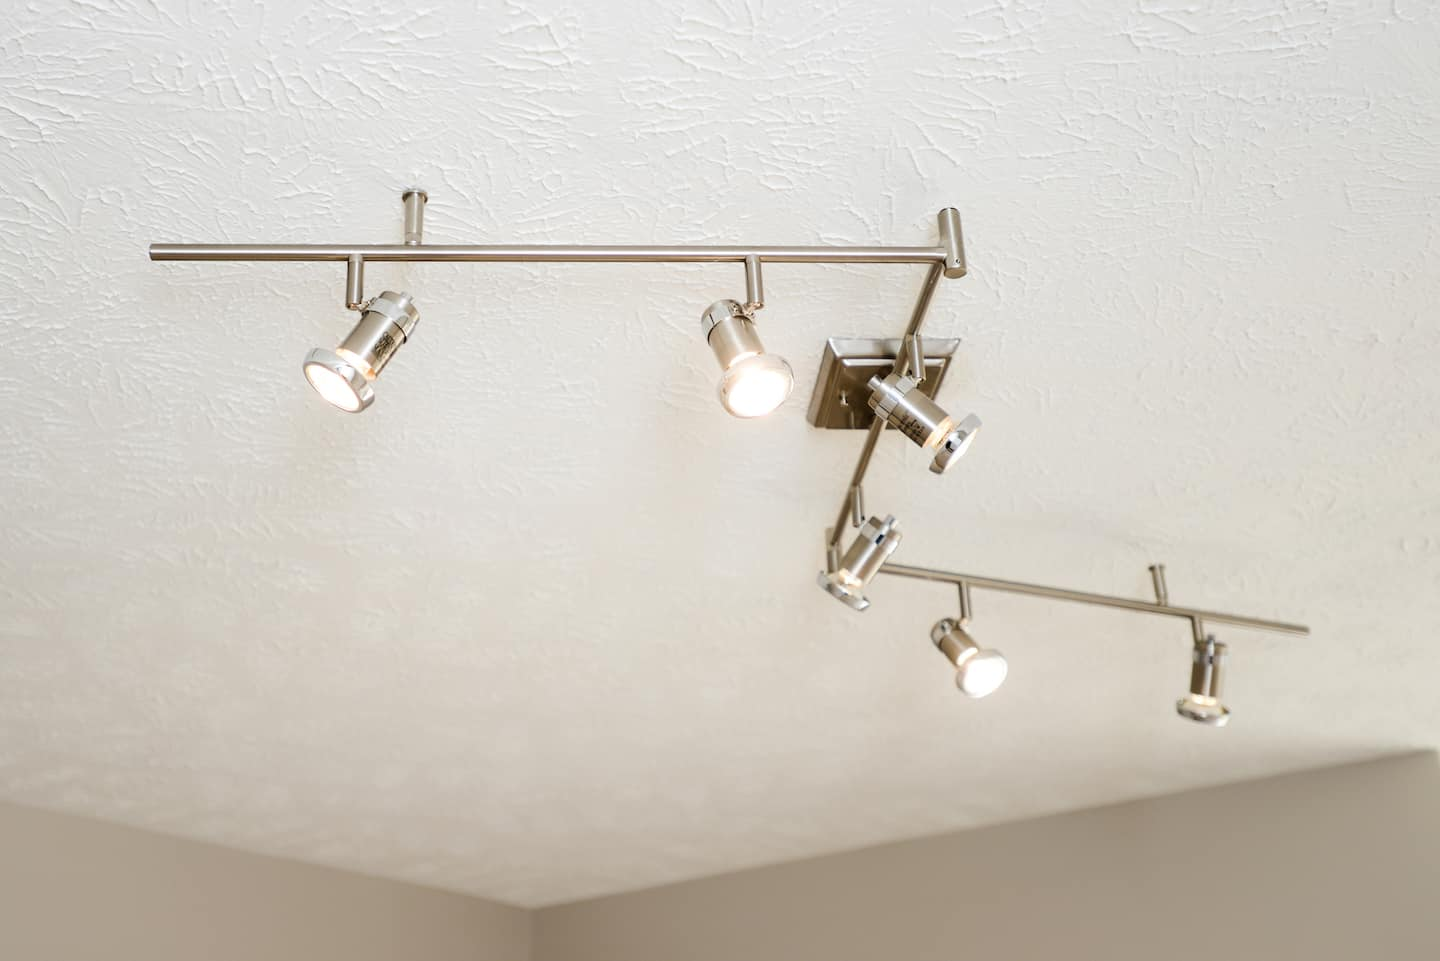 track lighting on bathroom ceiling & Is Track Lighting the Stylish Choice for Your Home? | Angieu0027s List azcodes.com